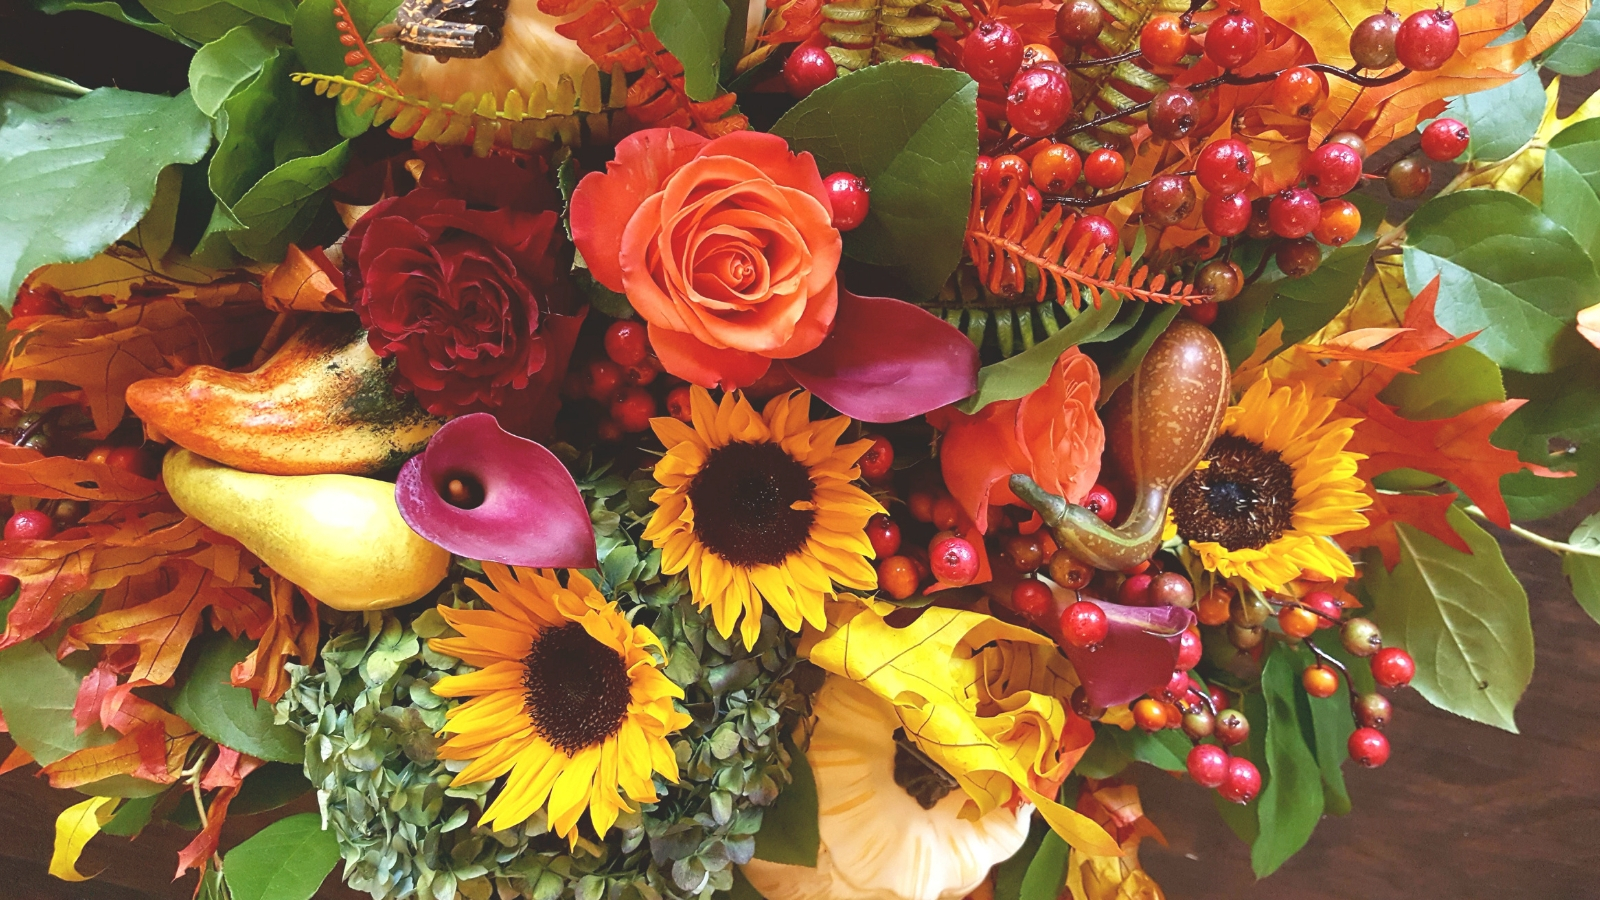 Charlottes florist since 1956 midwood flower shop fall flower collection izmirmasajfo